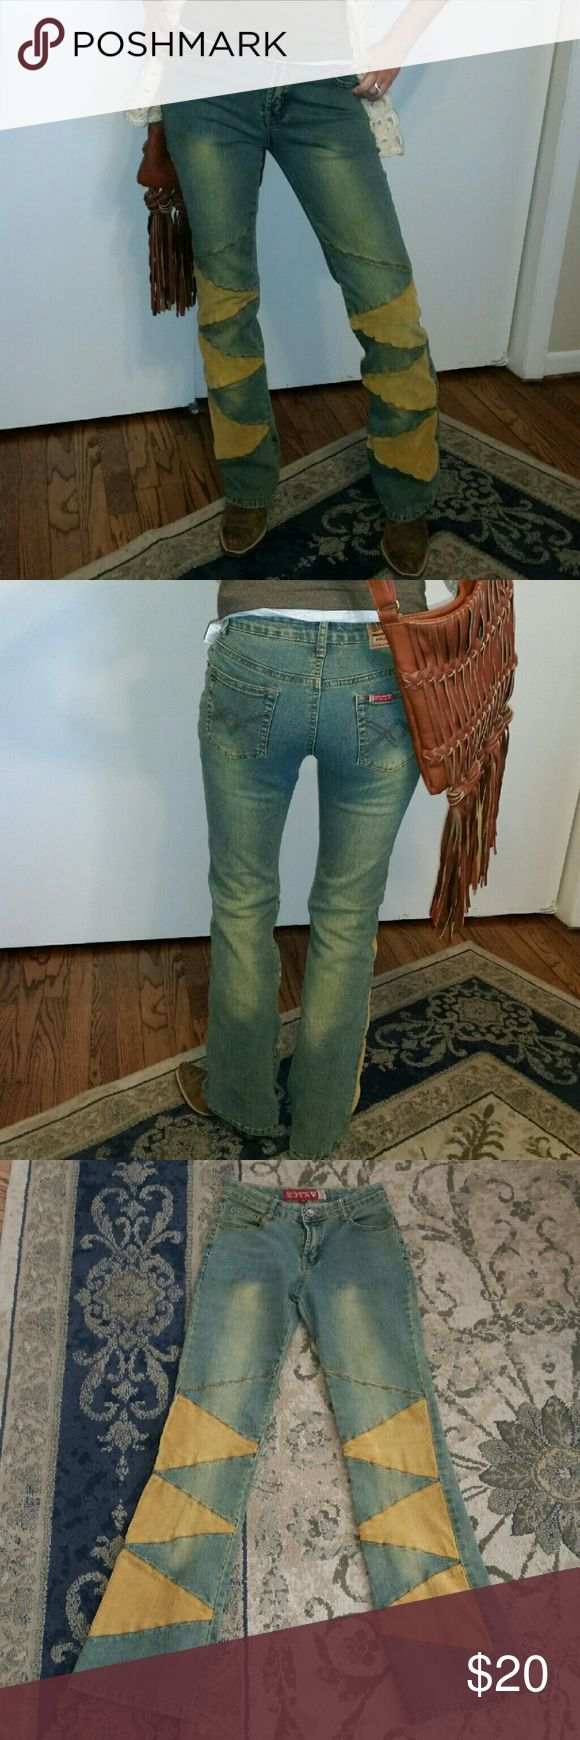 """GF INC USA Jeans Adorable BOHO style jeans with corduroy patches. Boot cut with 32"""" inseam GF INC USA Jeans Boot Cut"""